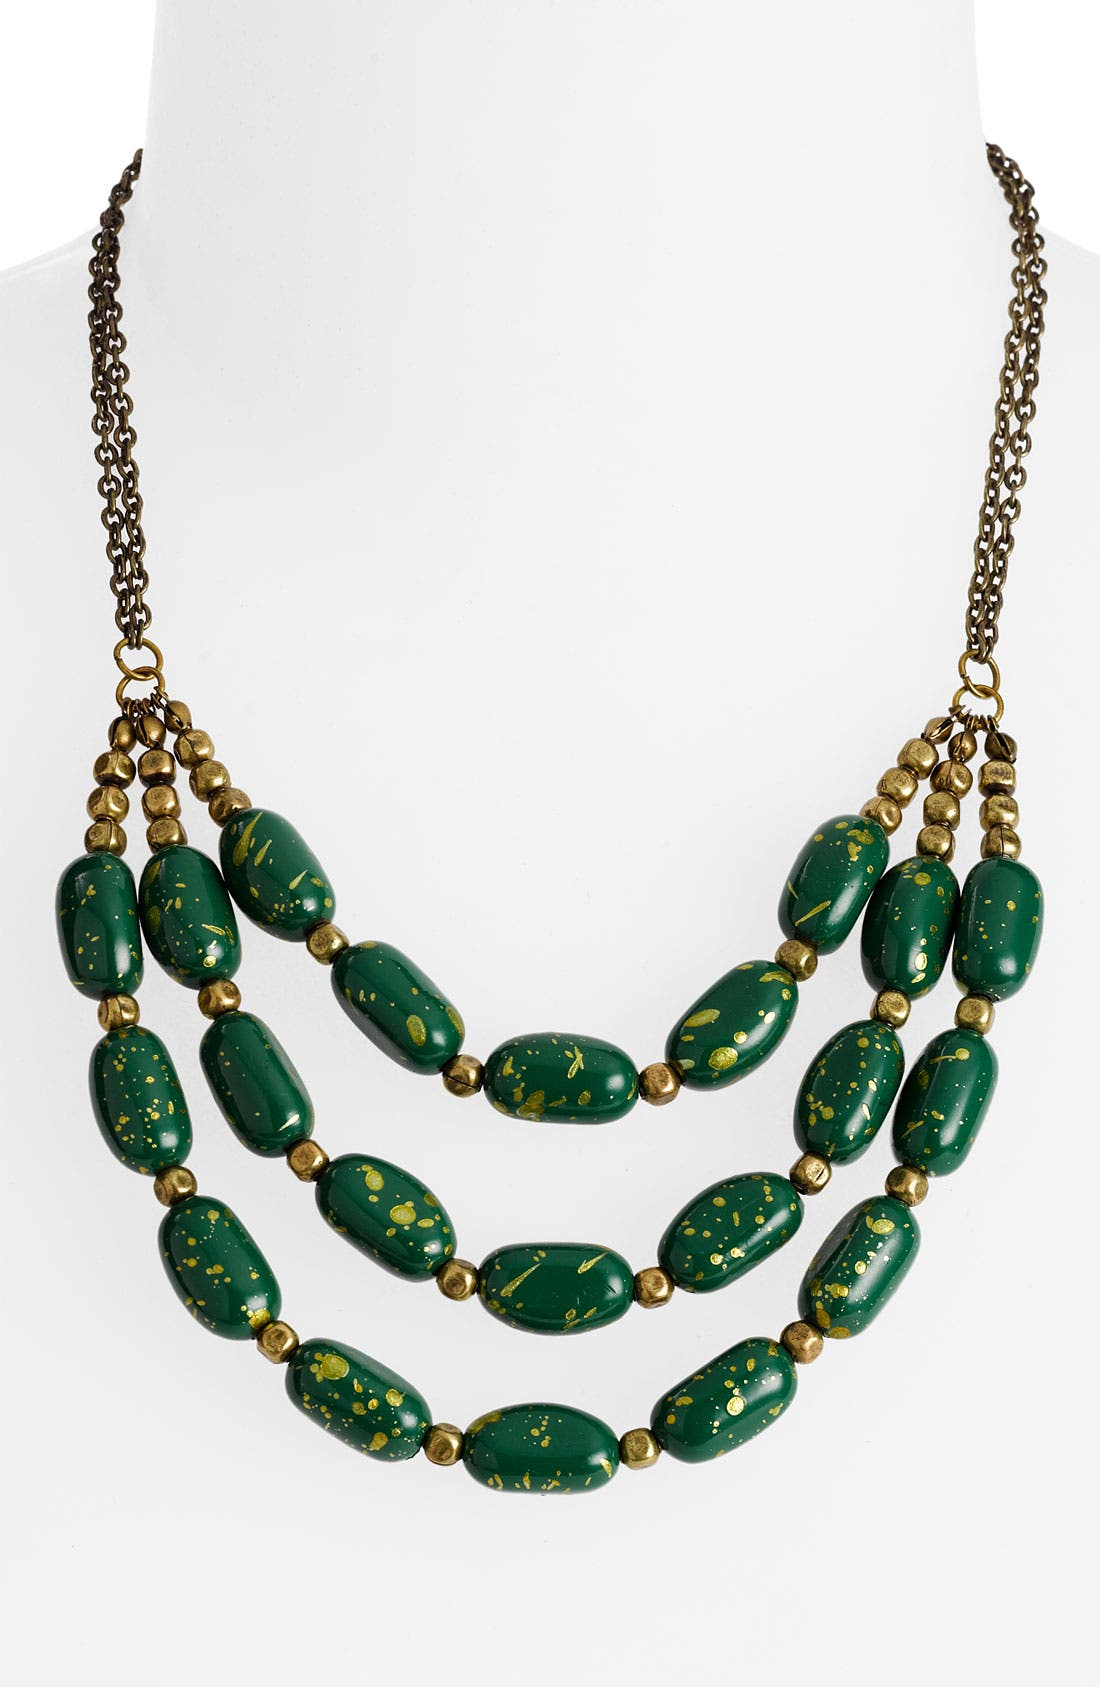 Main Image - Carole Triple Strand Bead Necklace